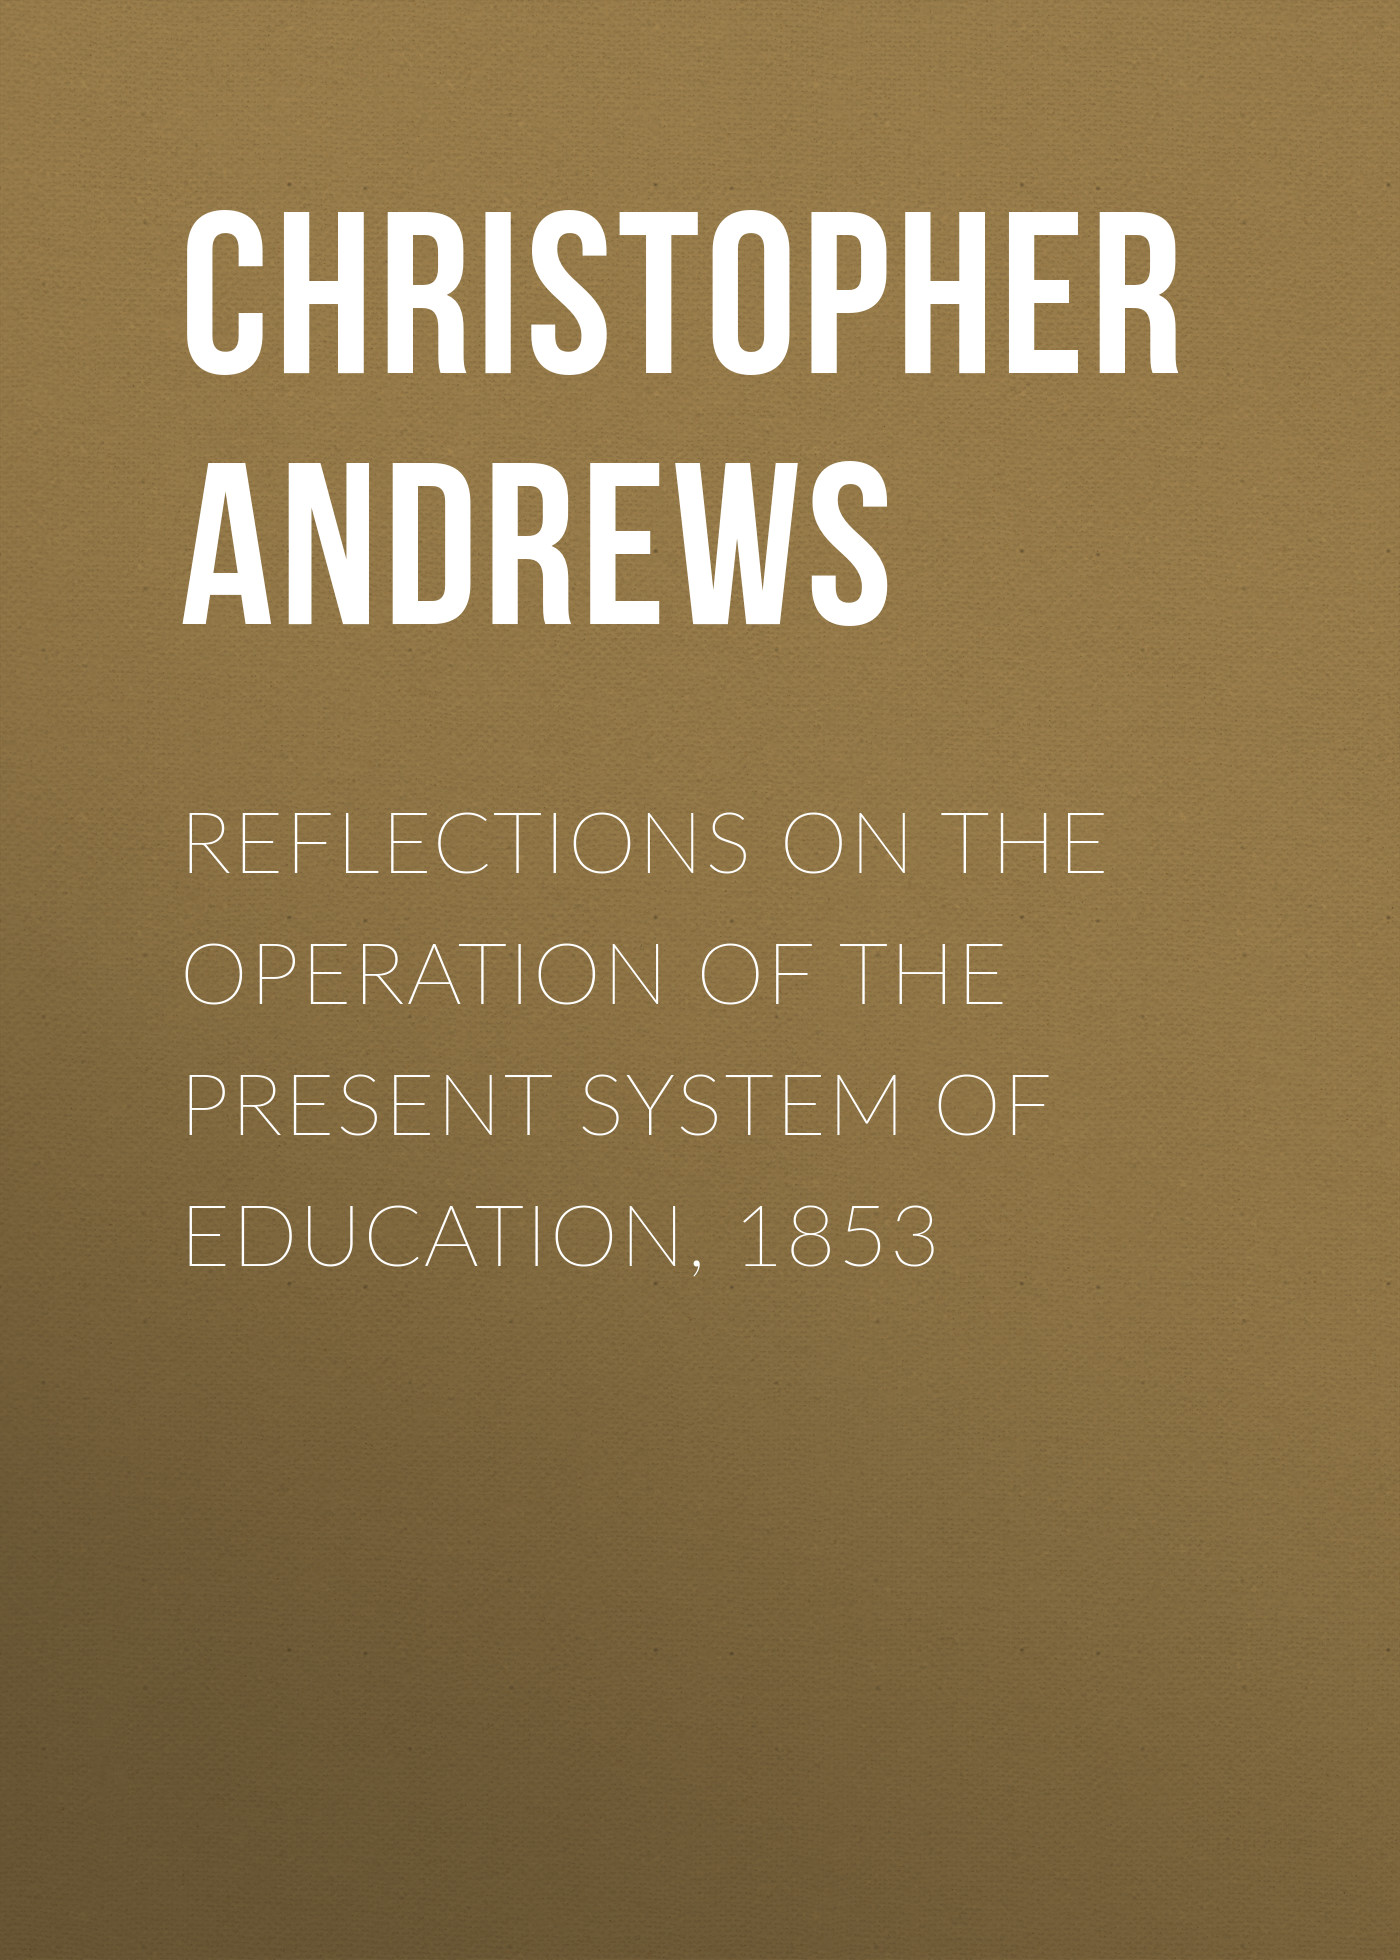 Фото - Andrews Christopher Columbus Reflections on the Operation of the Present System of Education, 1853 the book of symbols reflections on archetypal images